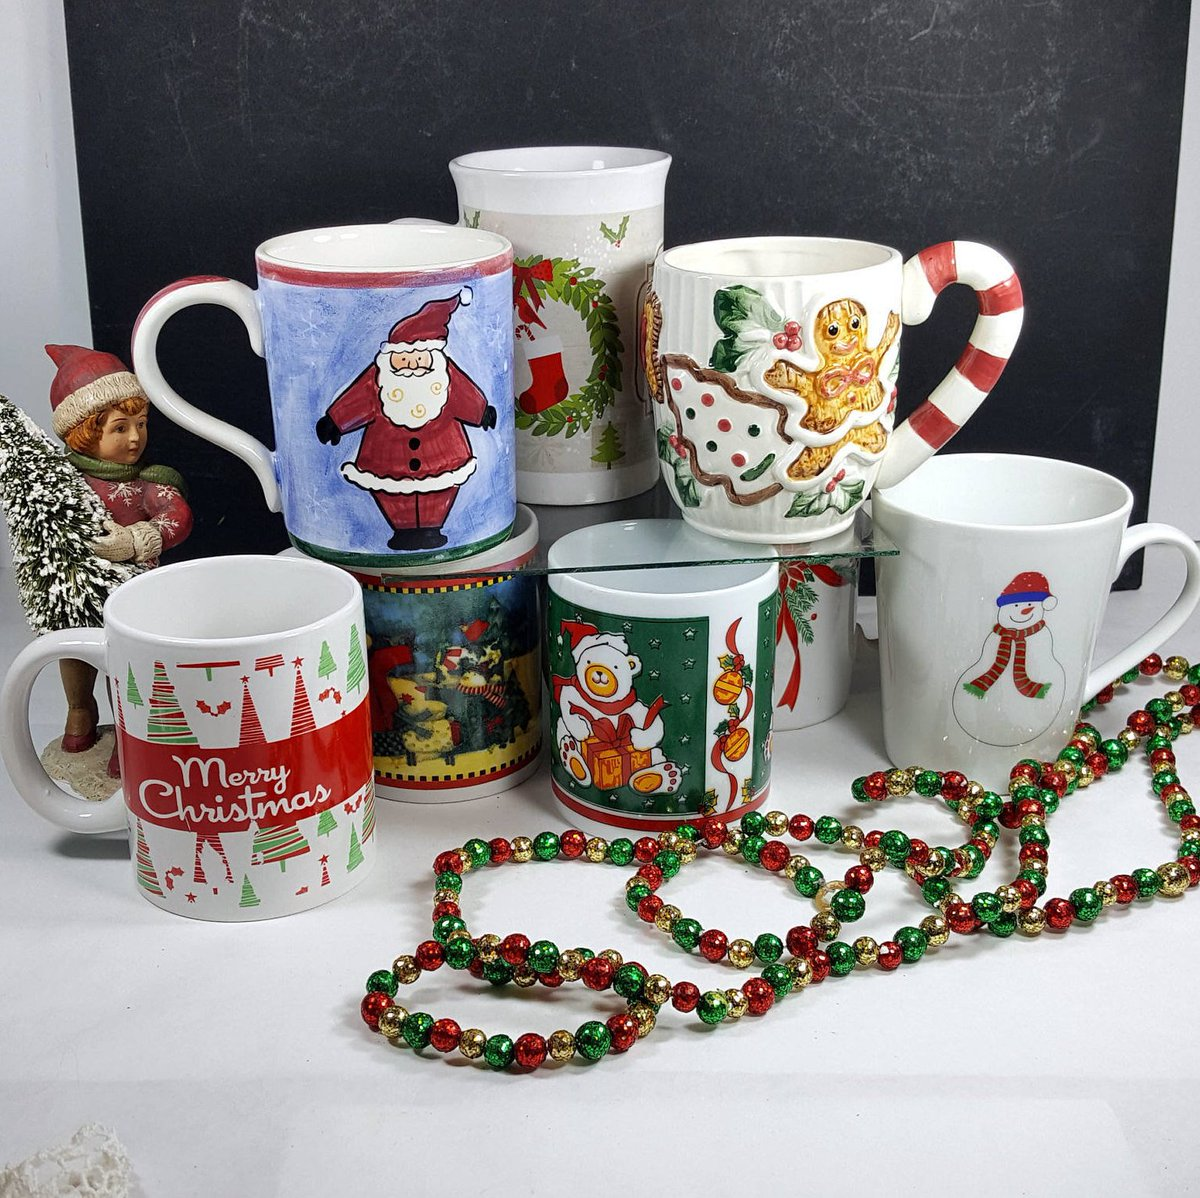 Naomi On Twitter 8 Vintage Christmas Mugs Mismatched Christmas Cups For Hot Chocolate Or Crafts Christmas Serving Or Christmas Decoration Winter Holiday Mugs Https T Co Biery52nak Kitsch Vintage Etsy Lasttangovintage Vintagechristmas Https